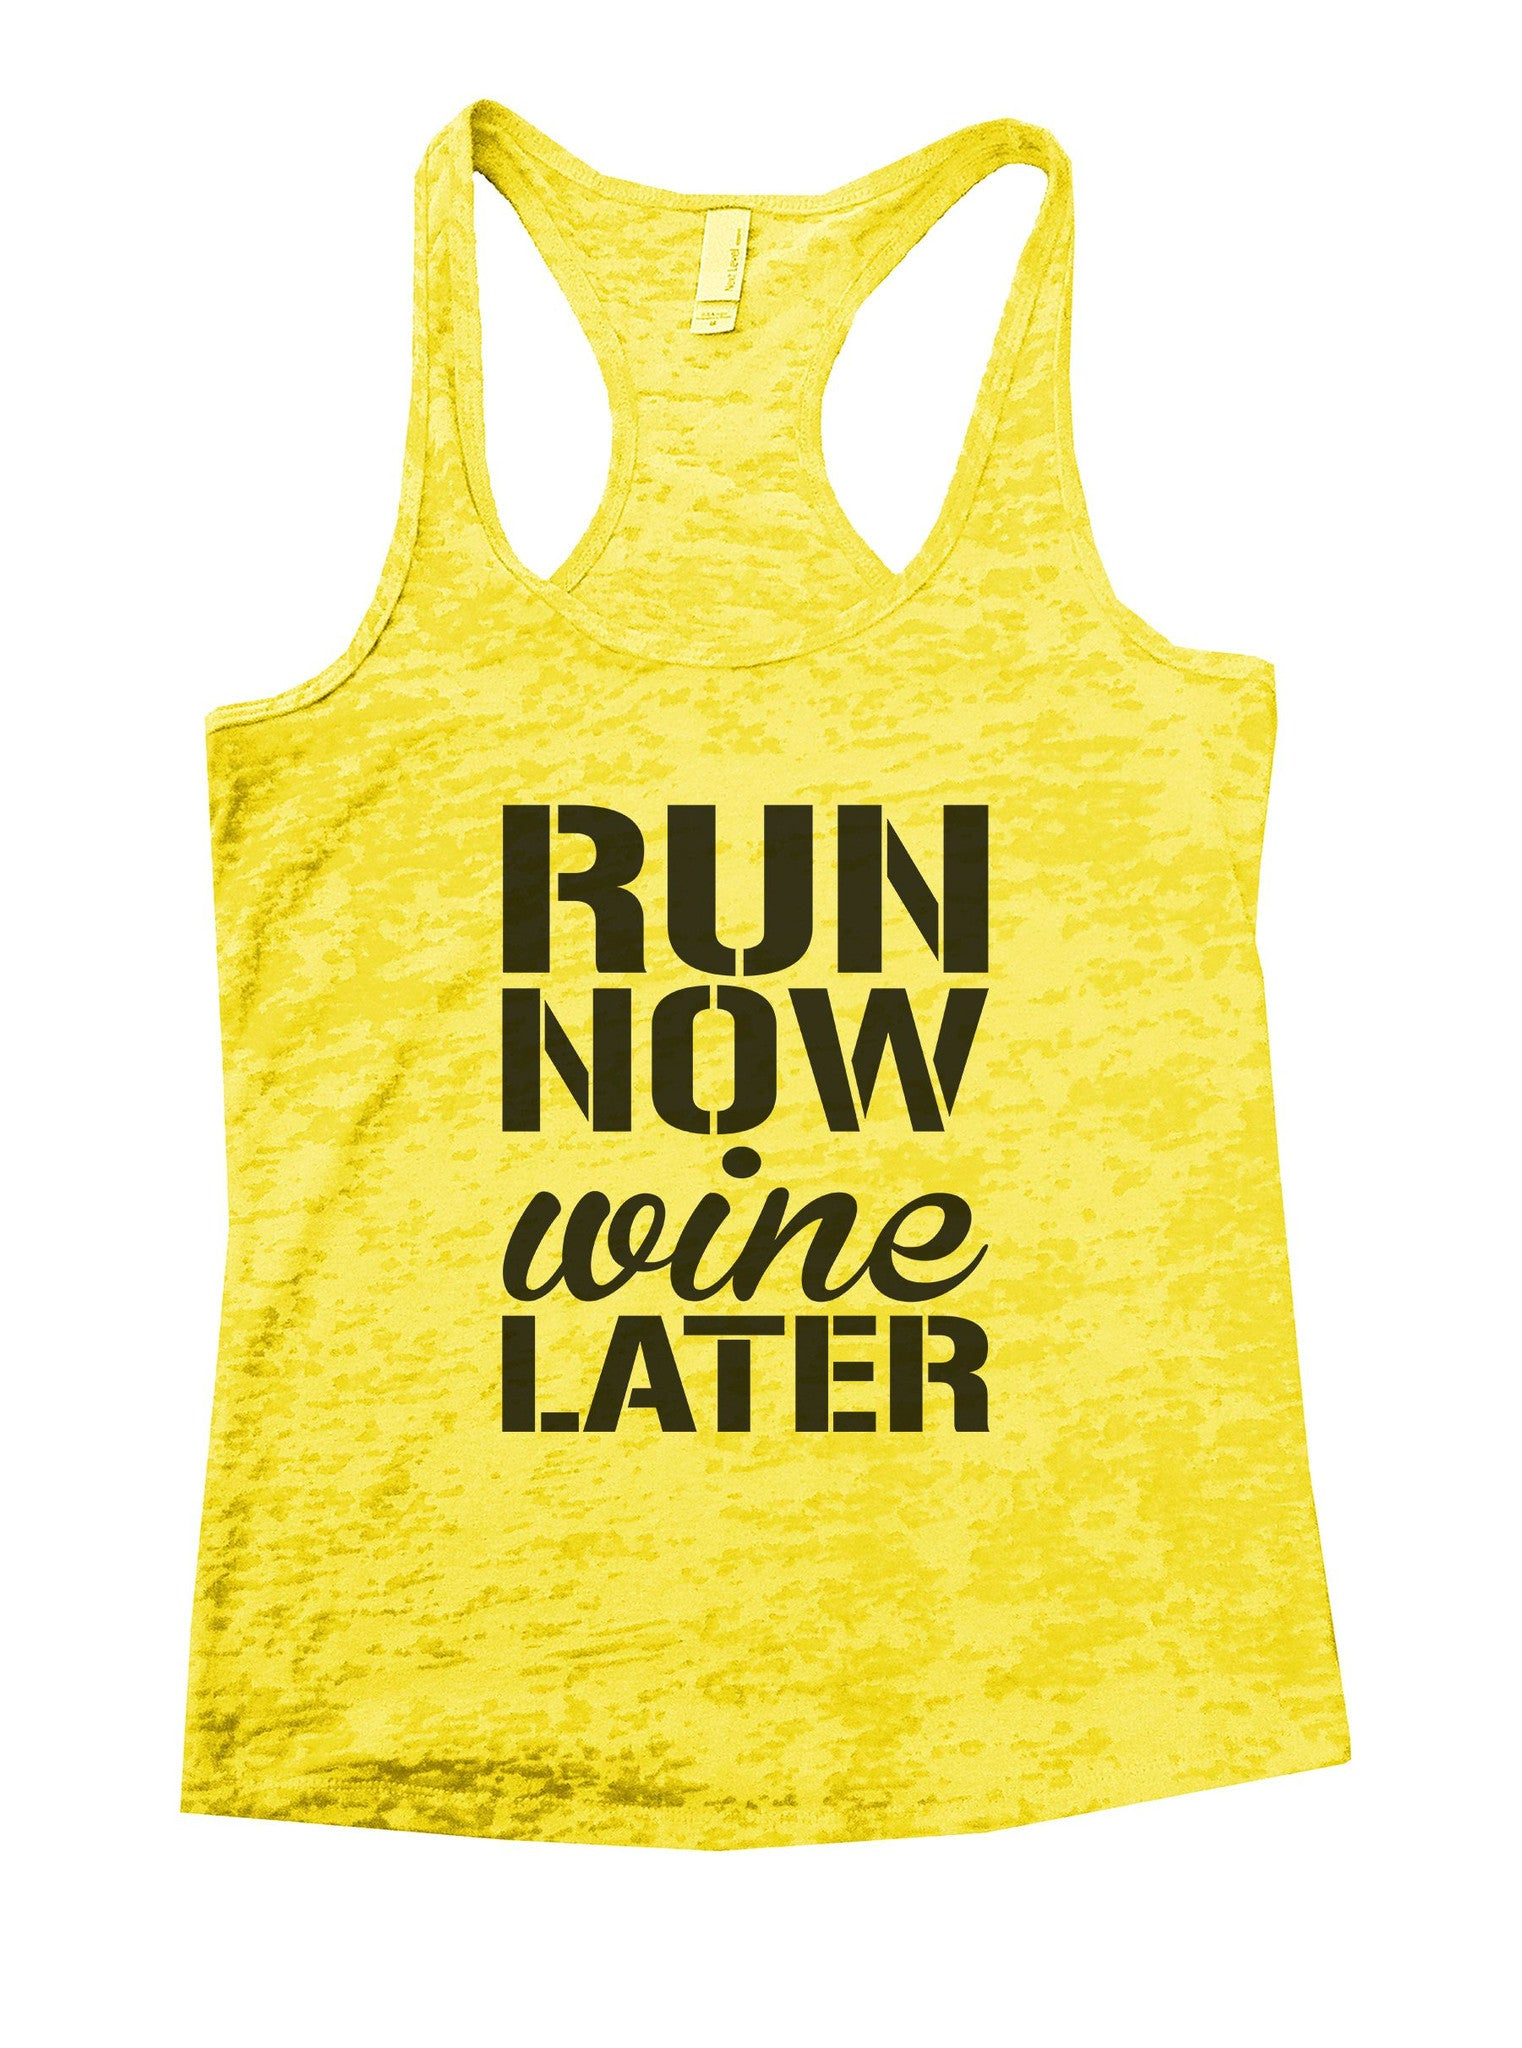 Run Now Wine Later Burnout Tank Top By BurnoutTankTops.com - 951 - Funny Shirts Tank Tops Burnouts and Triblends  - 7